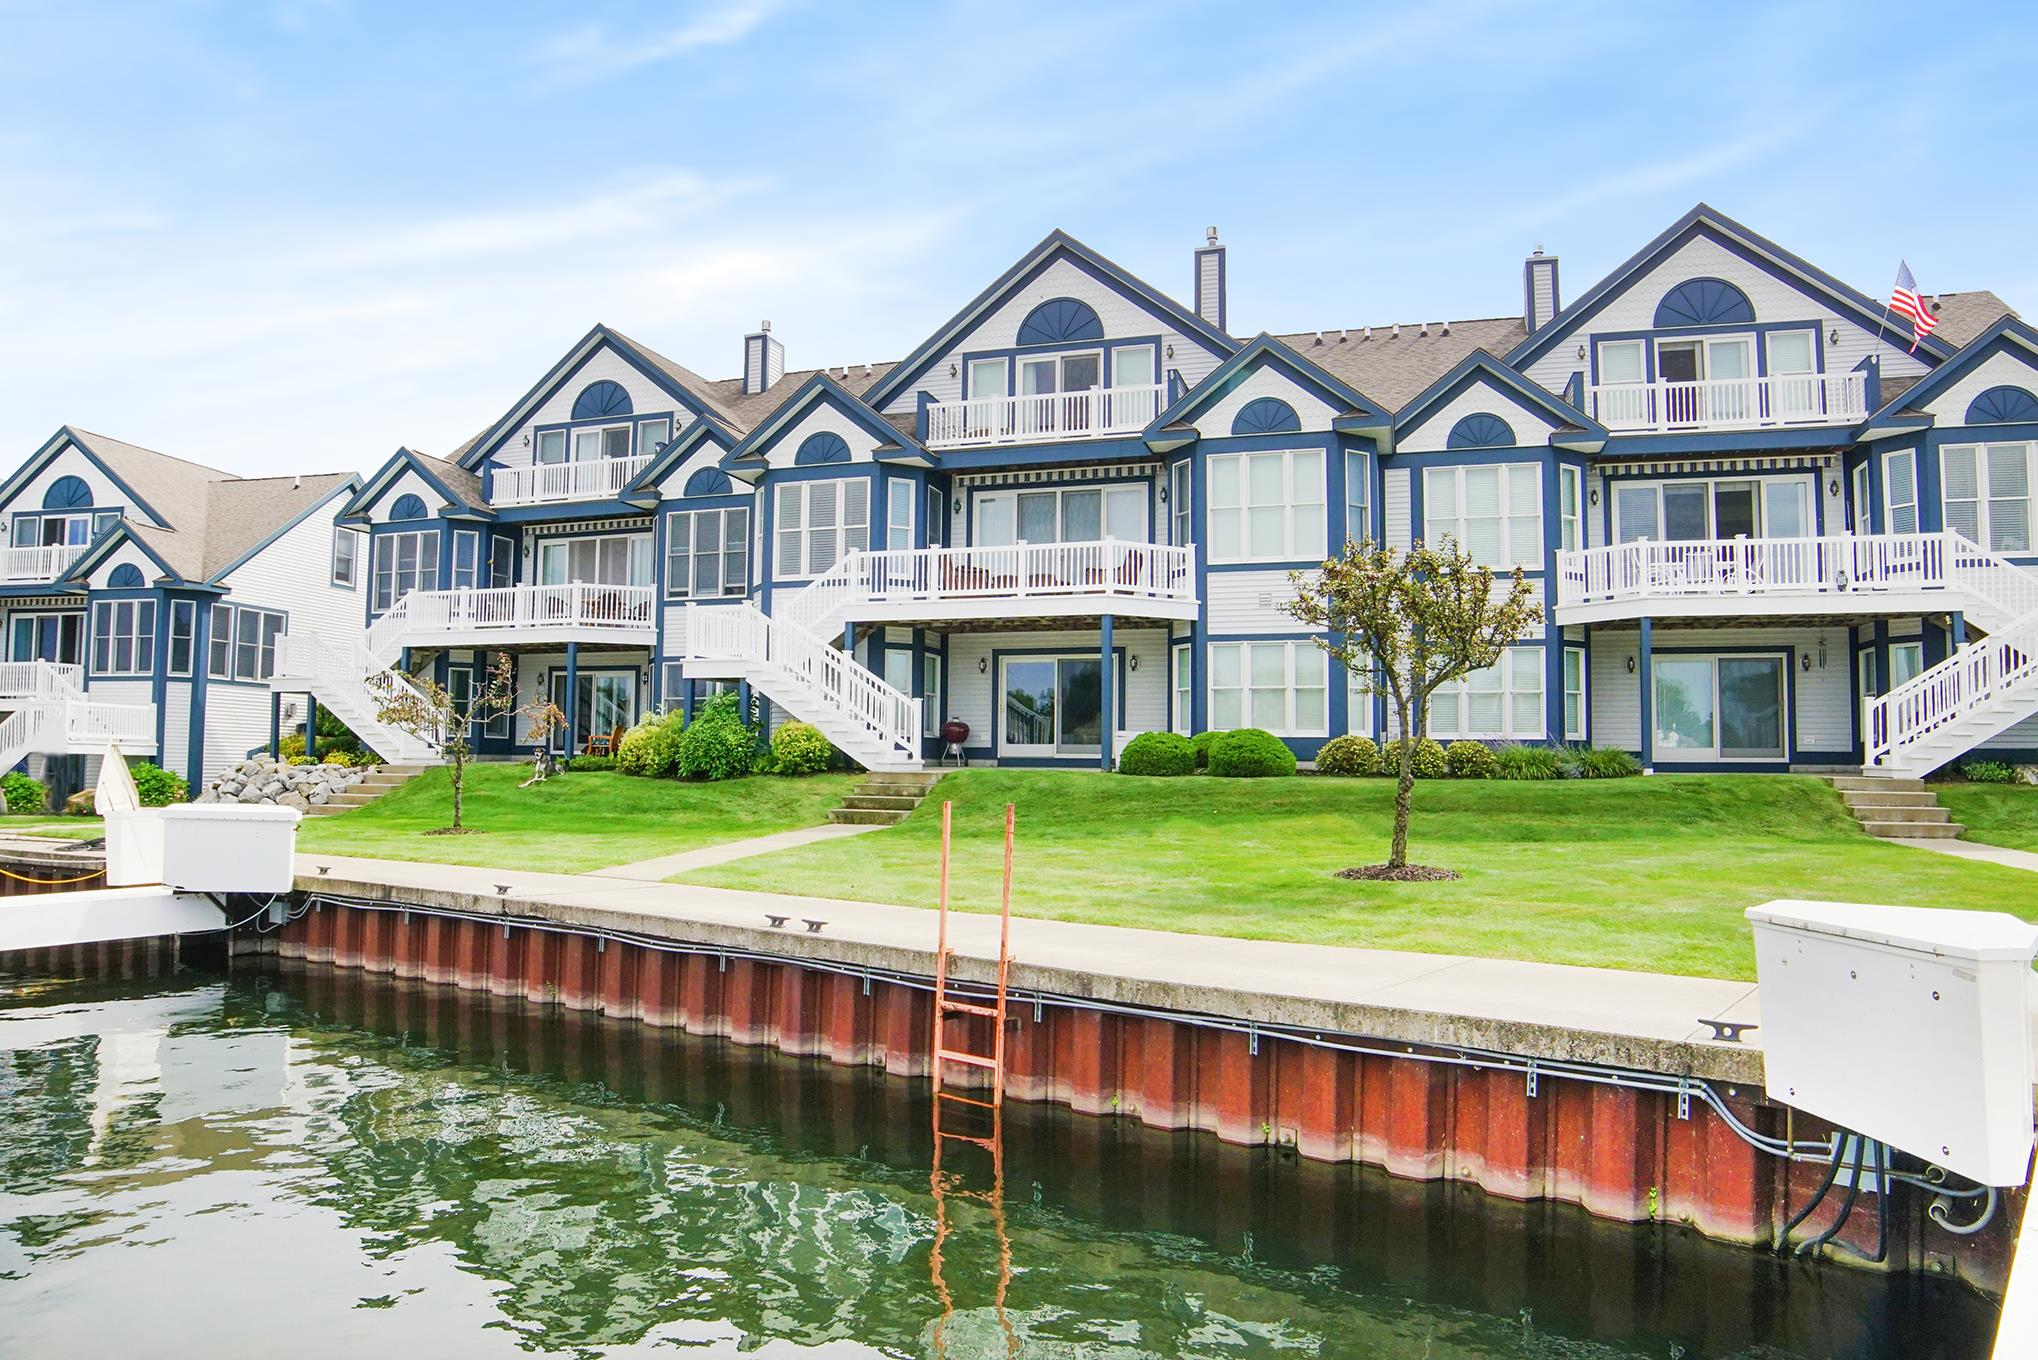 Harbor Village Condo for sale in Manistee